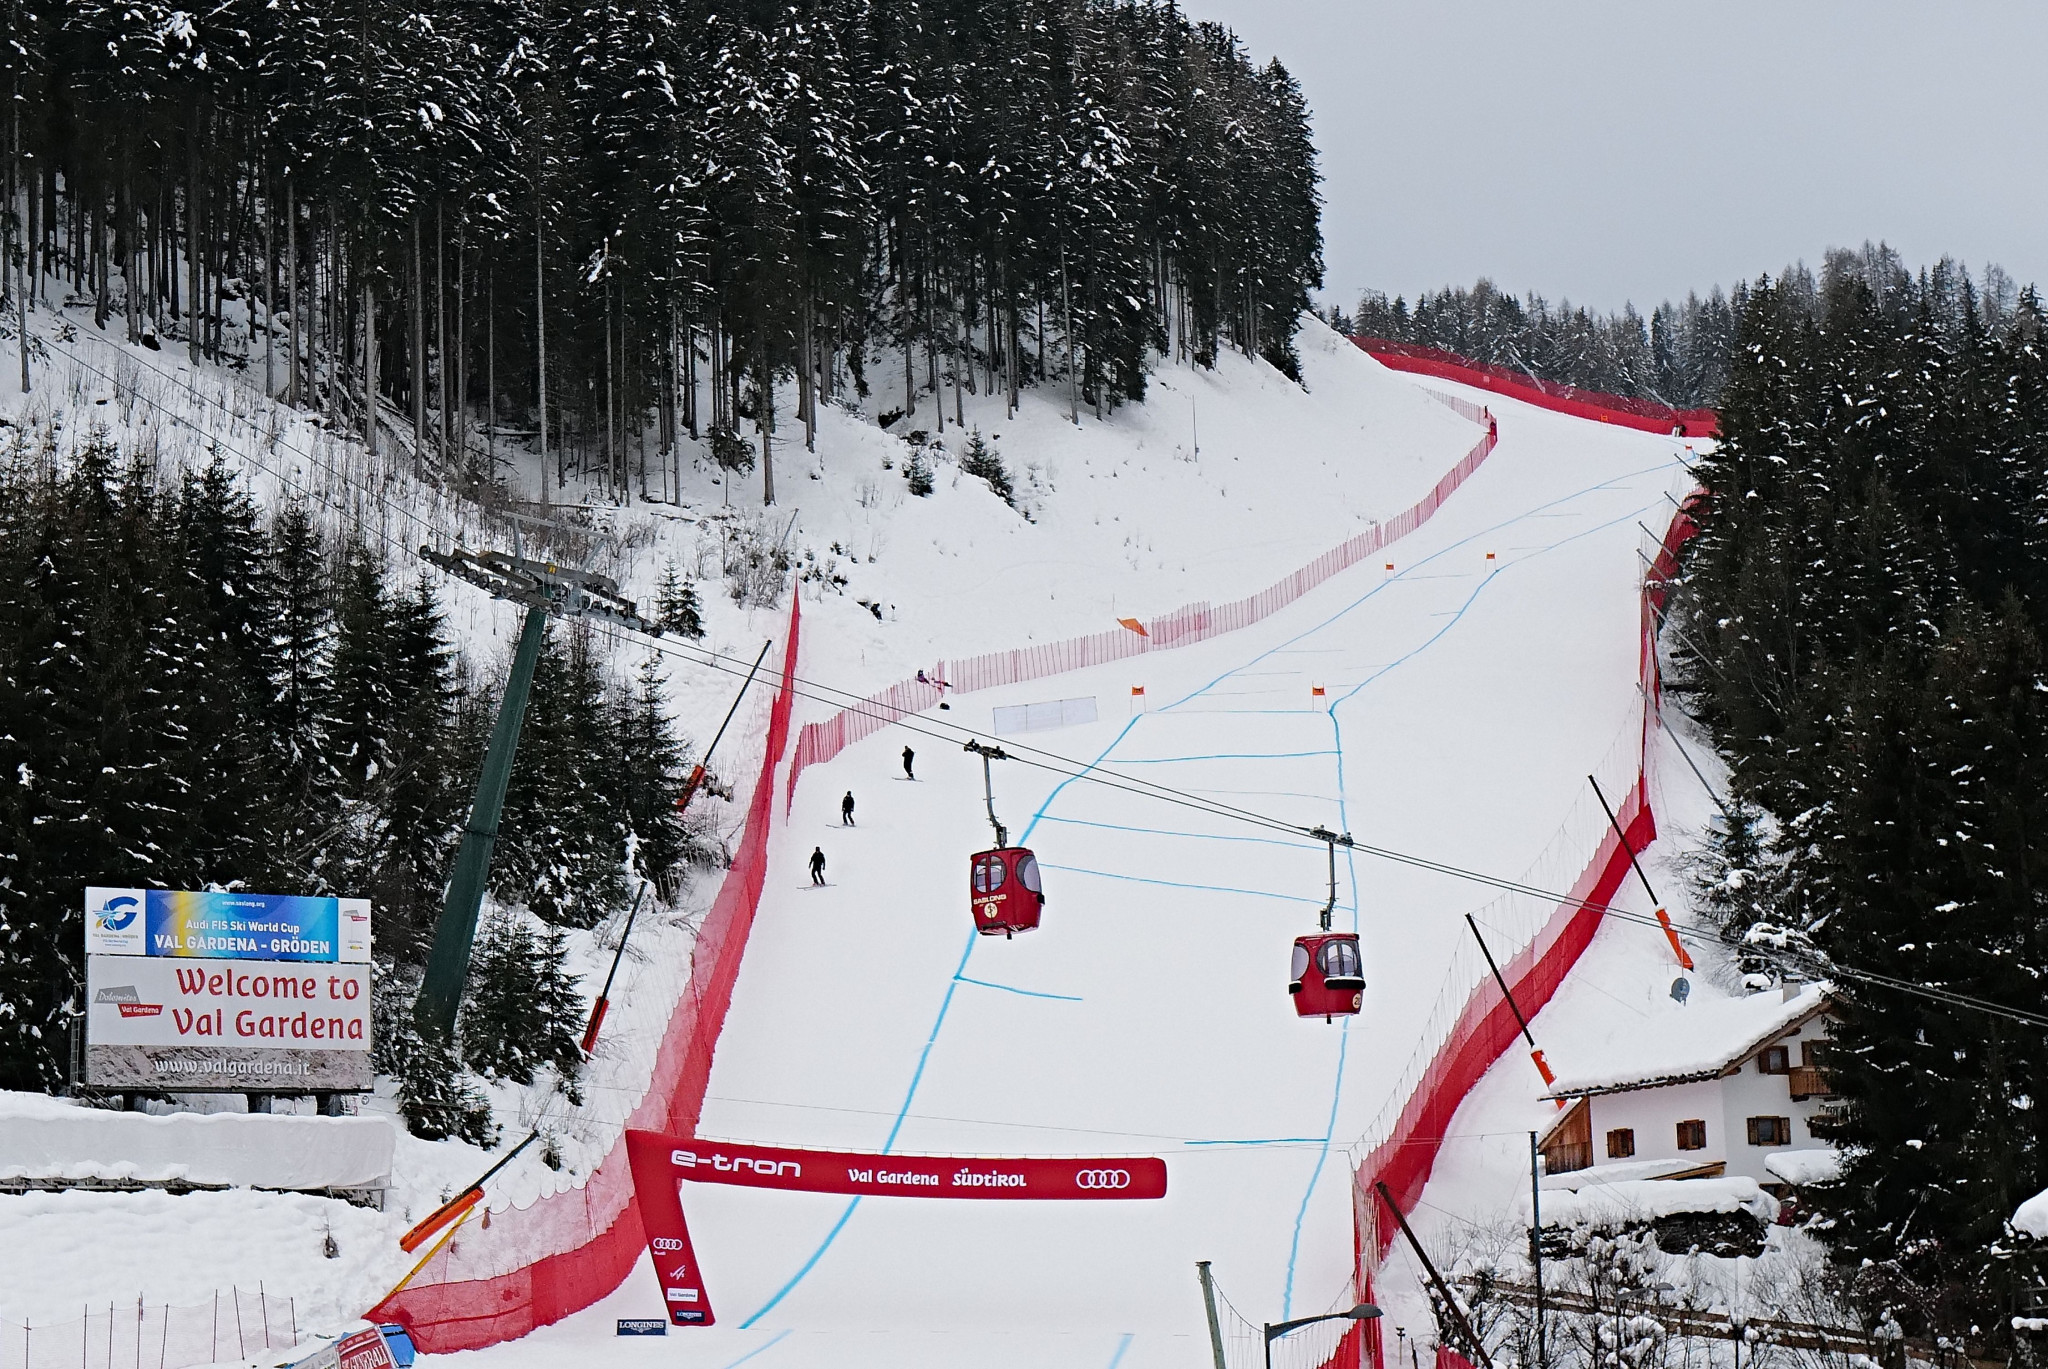 Val Gardena will host the latest men's World Cup event ©Getty Images